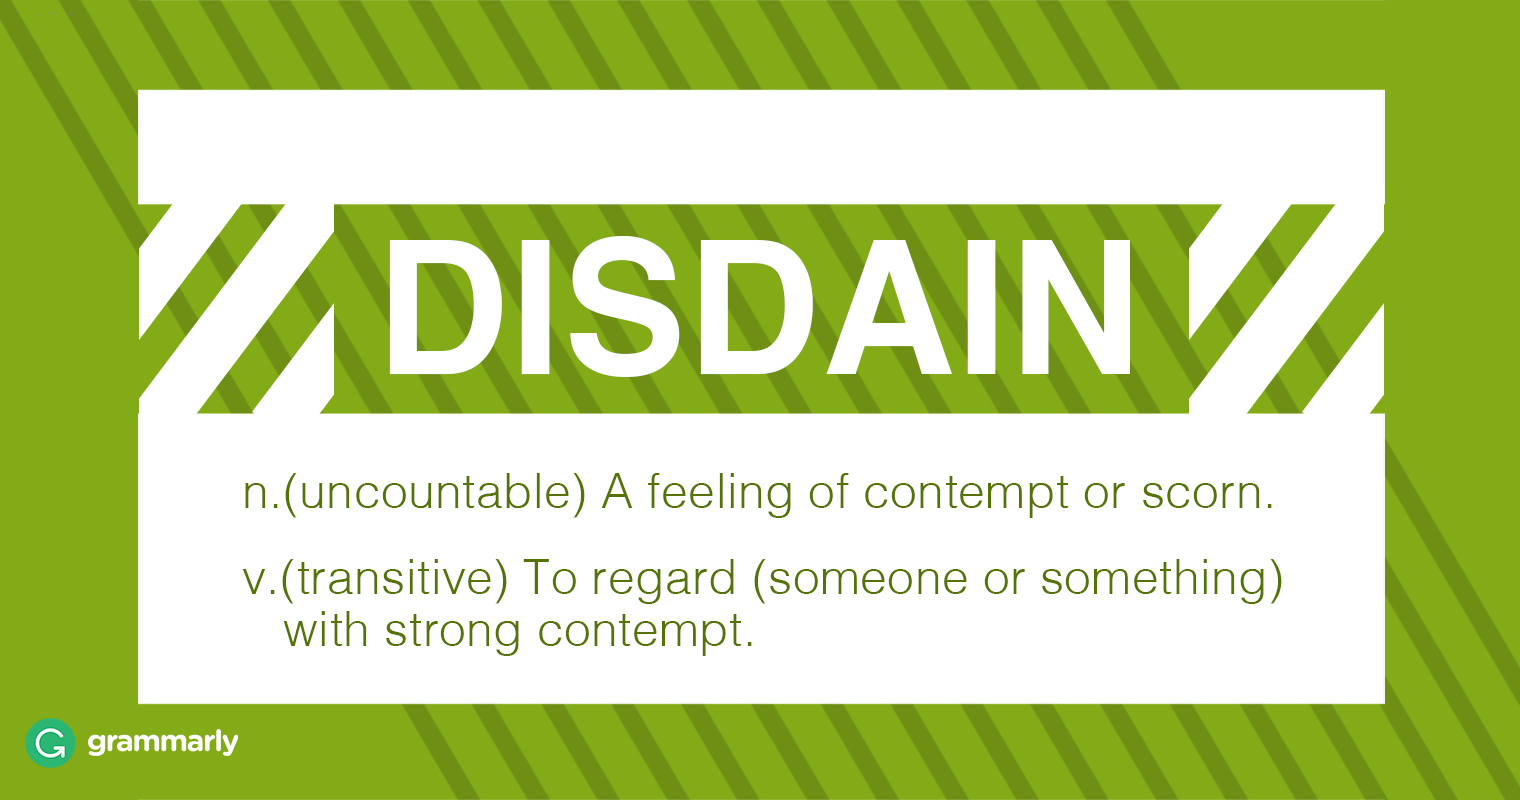 disdain n. (uncountable) A feeling of contempt or scorn. v. (transitive) To regard (someone or something) with strong contempt.